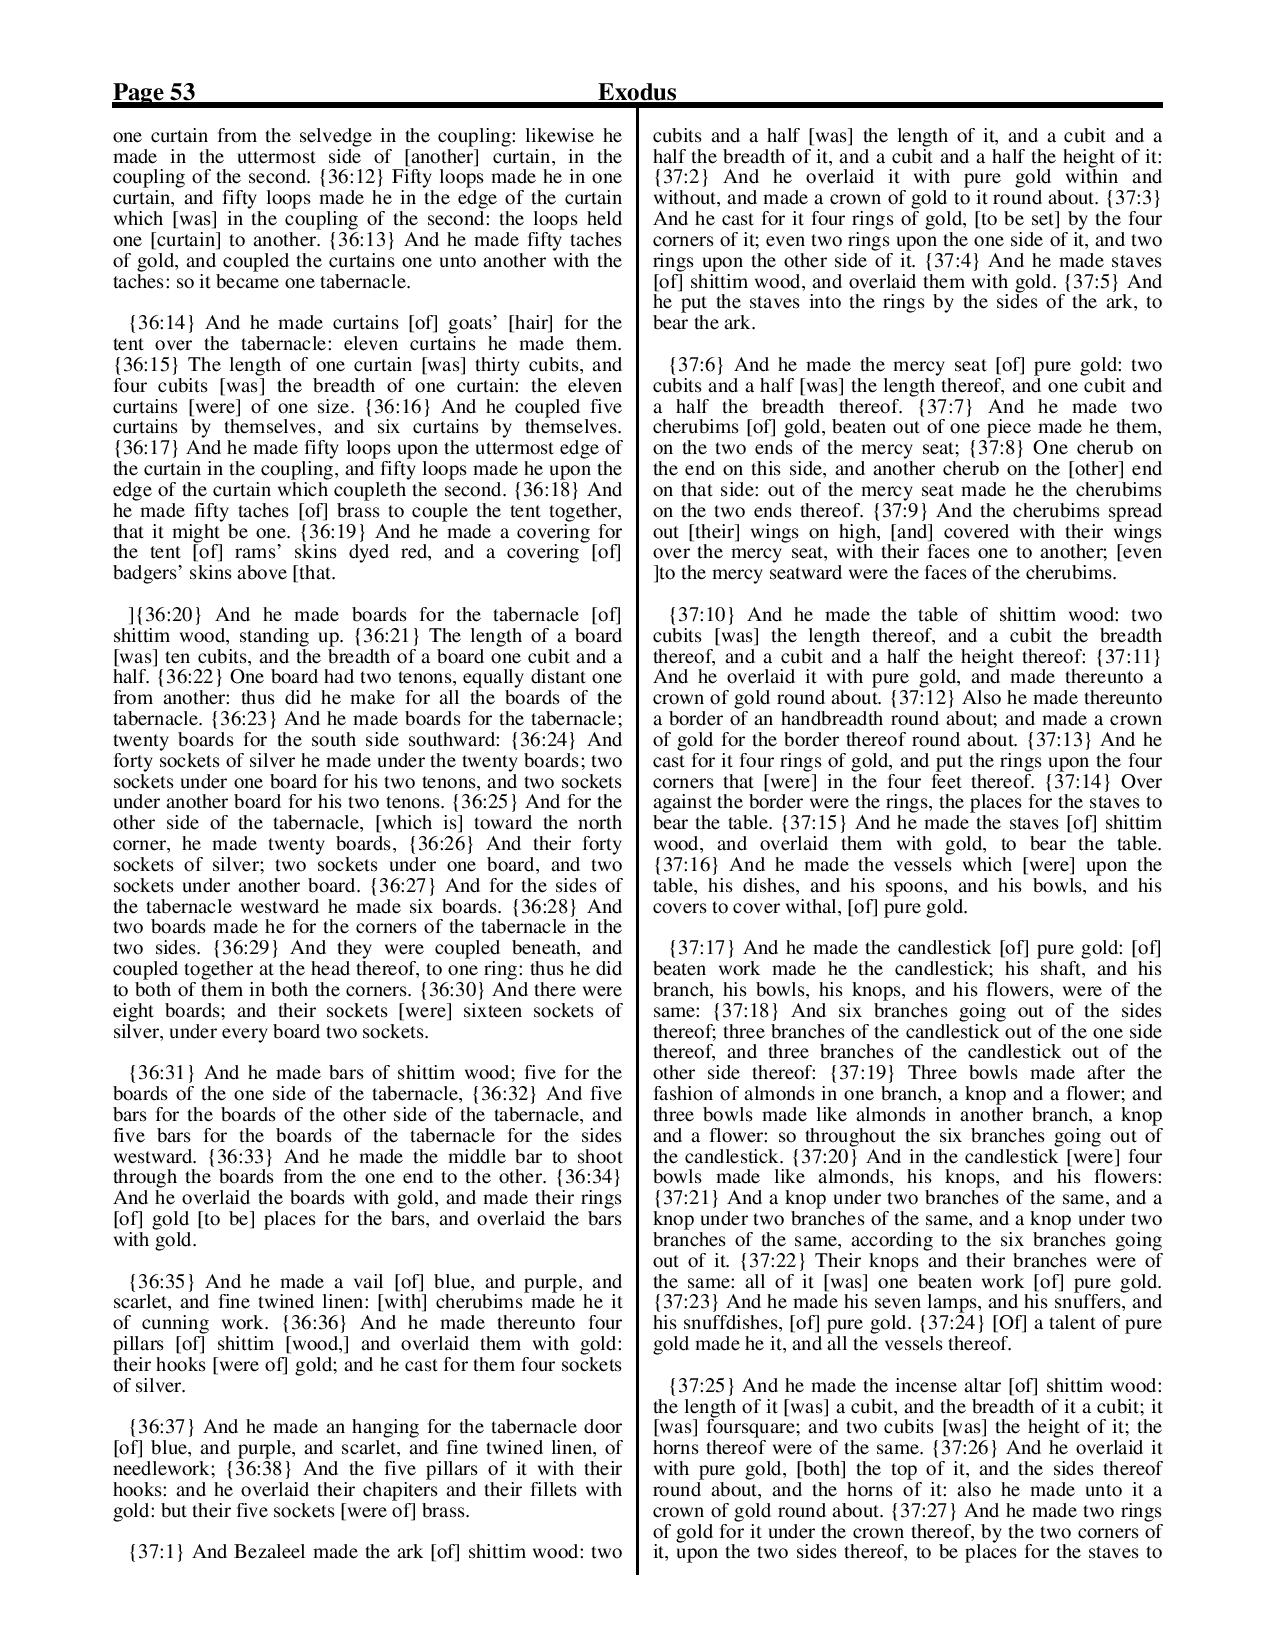 King-James-Bible-KJV-Bible-PDF-page-074